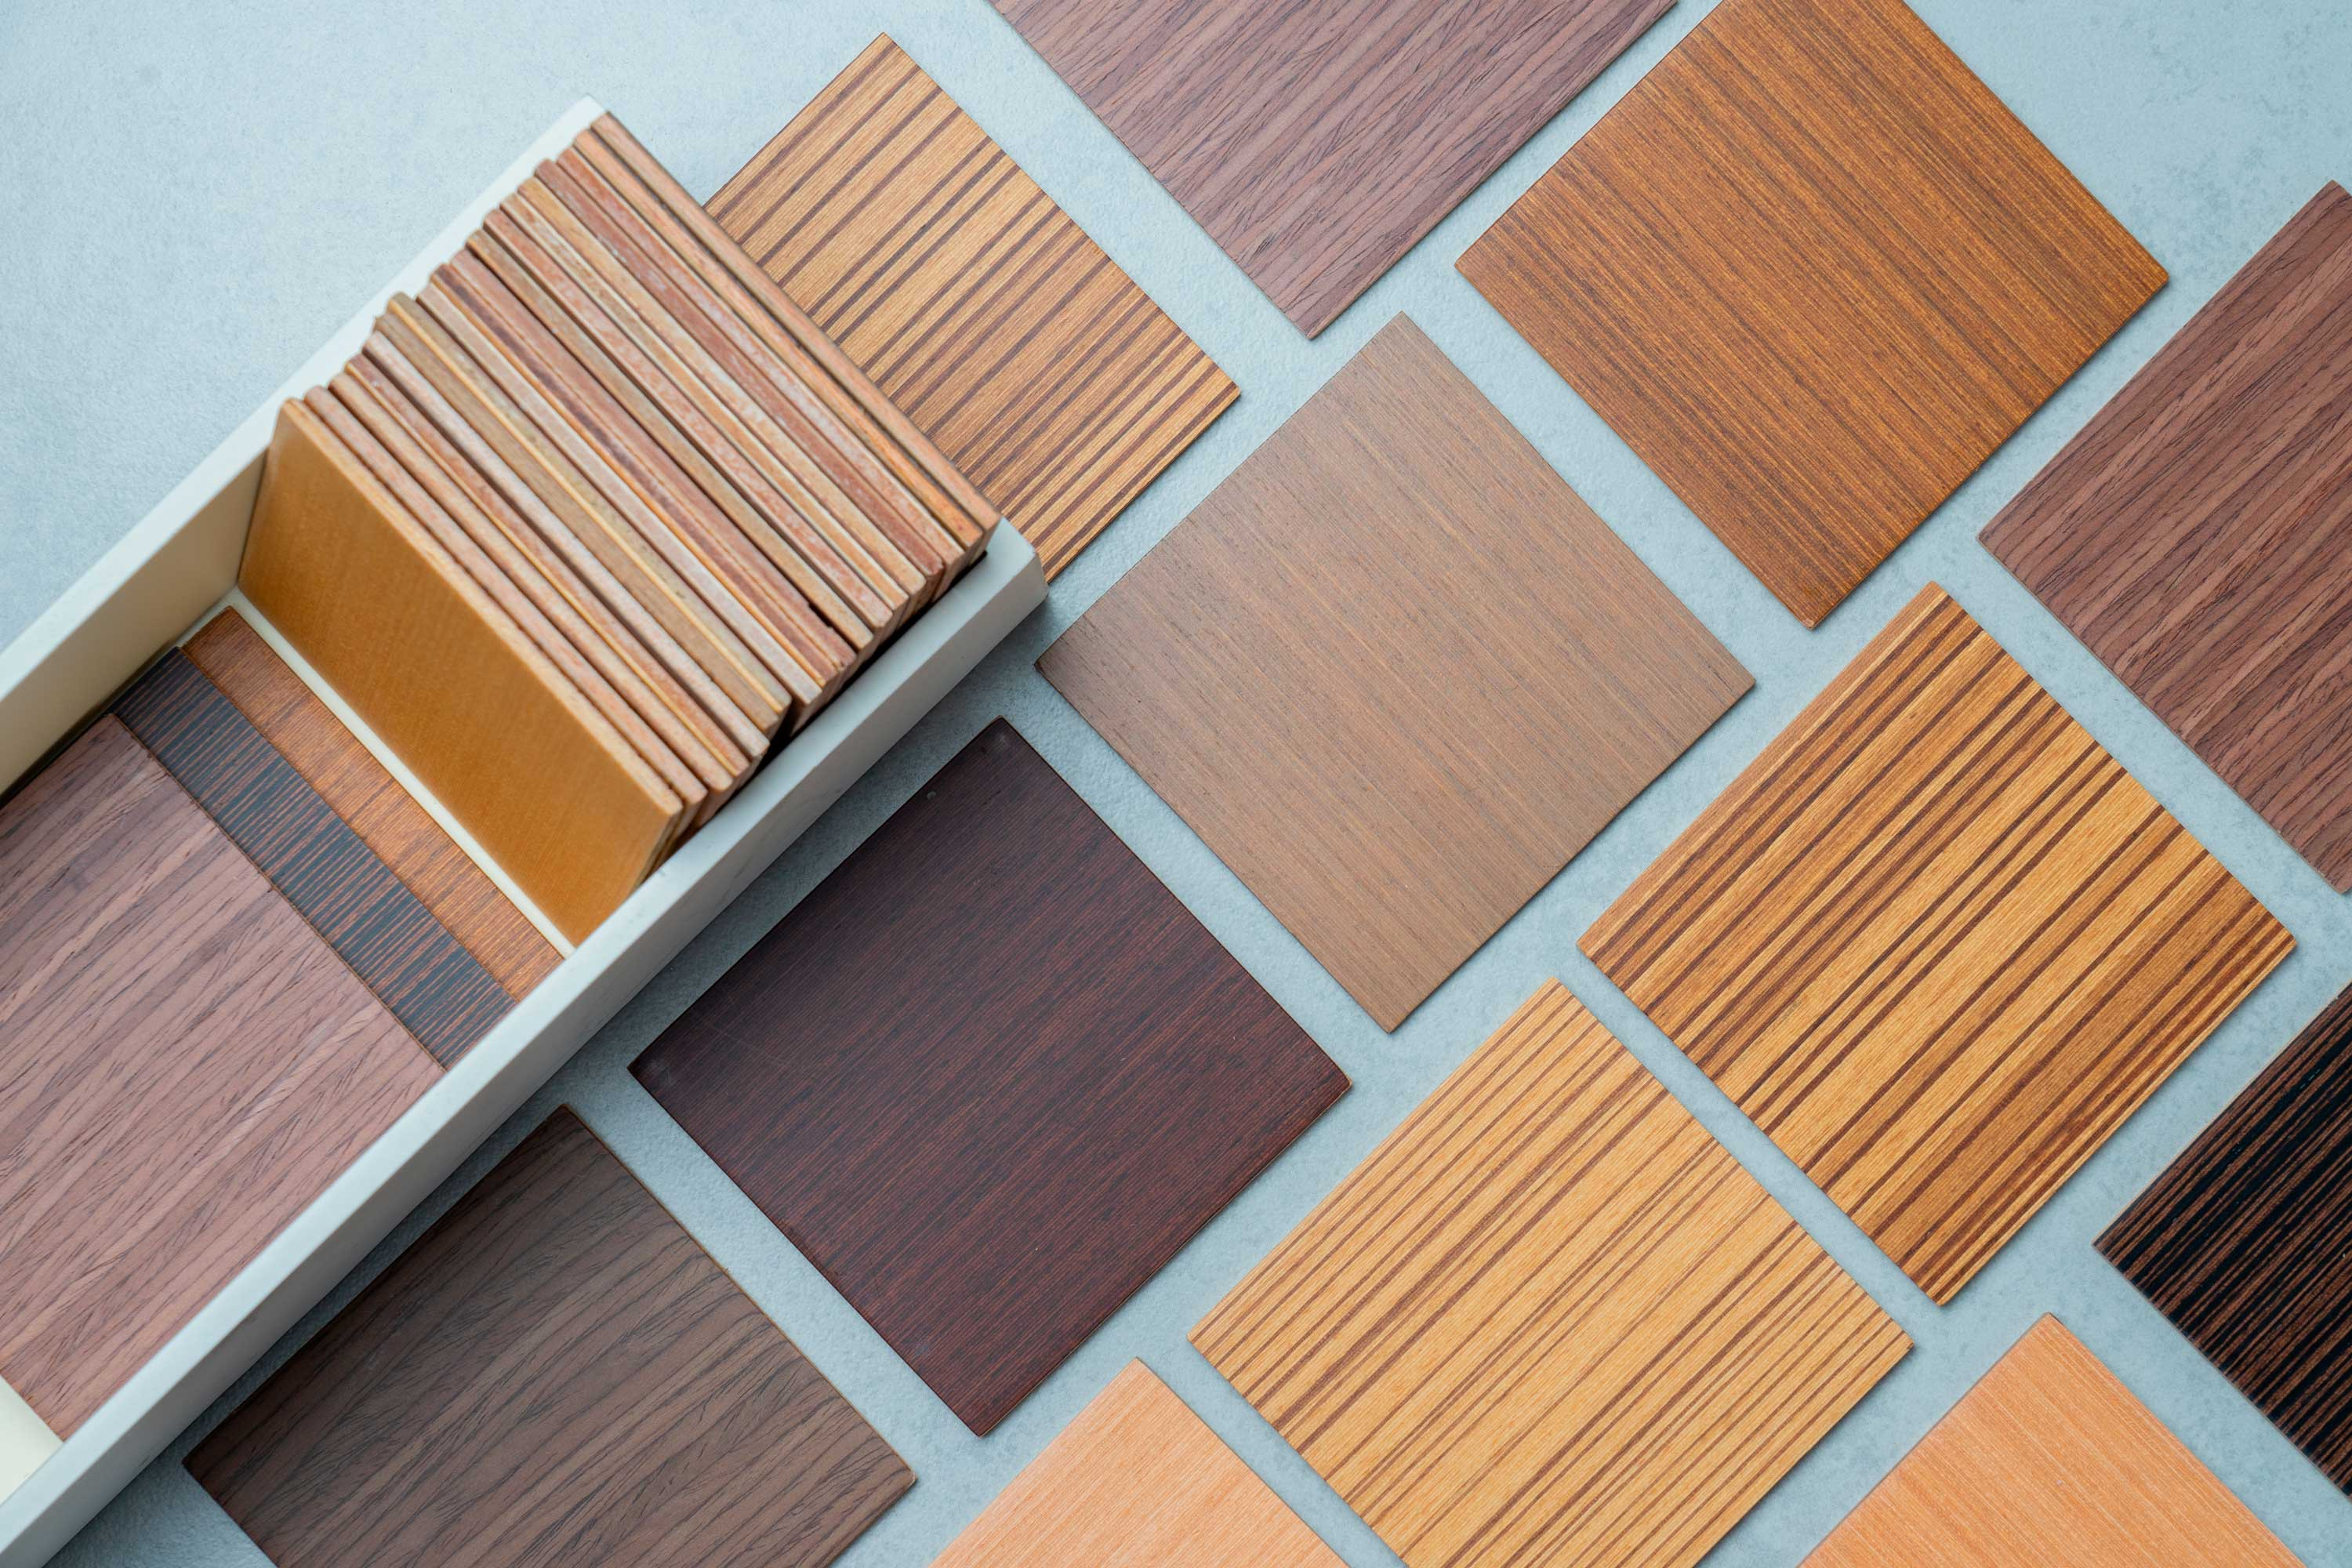 wood_surfaces2